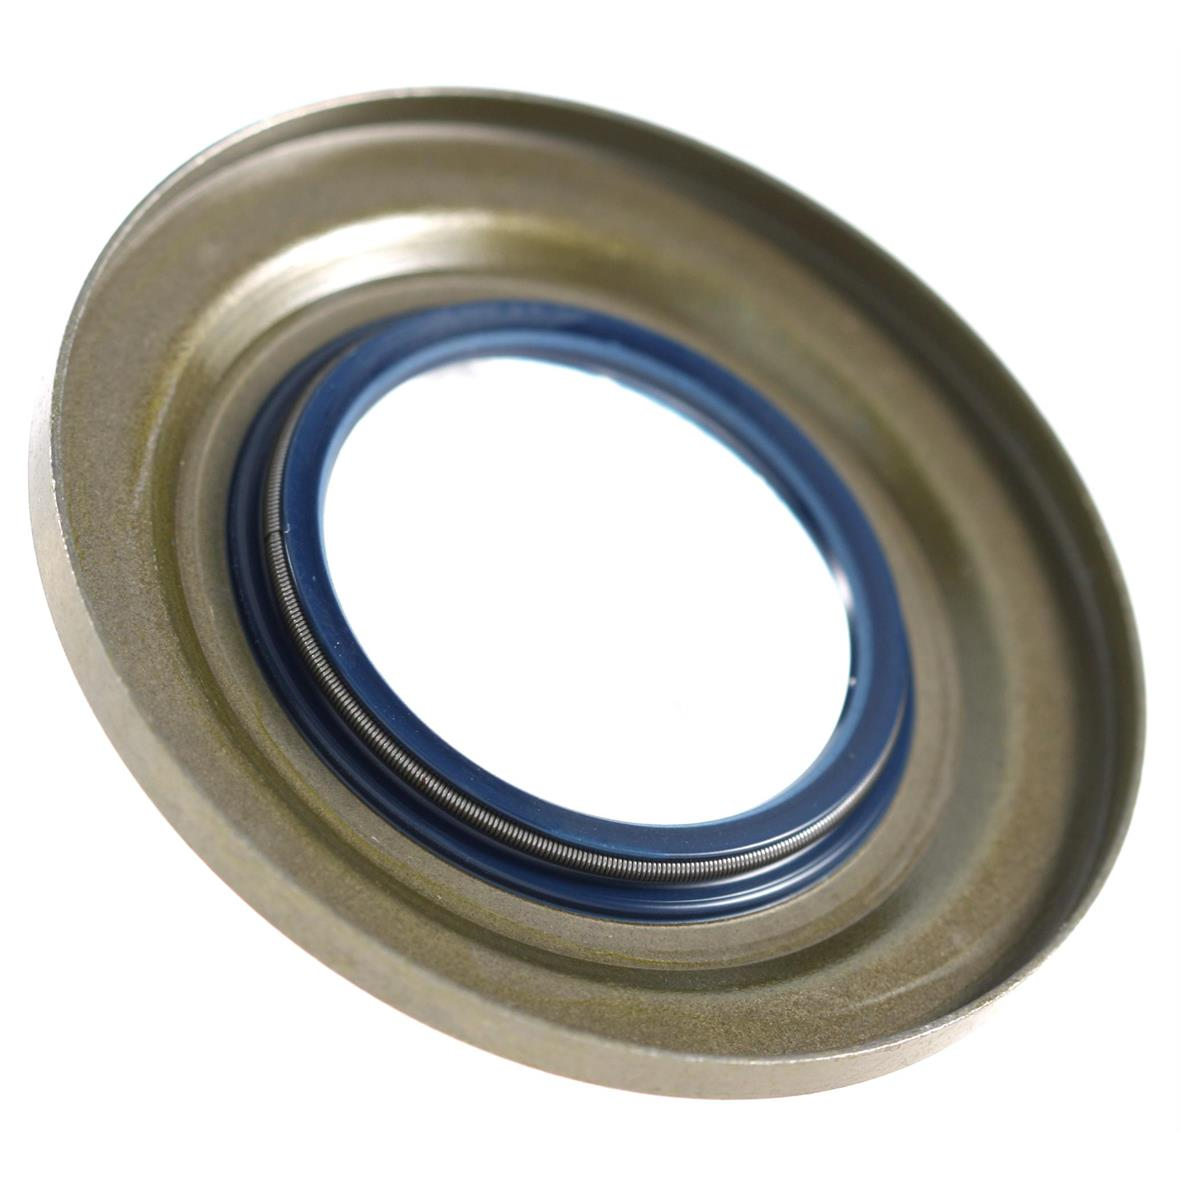 Product Image for 'Oil Seal crankshaft clutch side CORTECO 31x62,1x4,3x5,8 mmTitle'